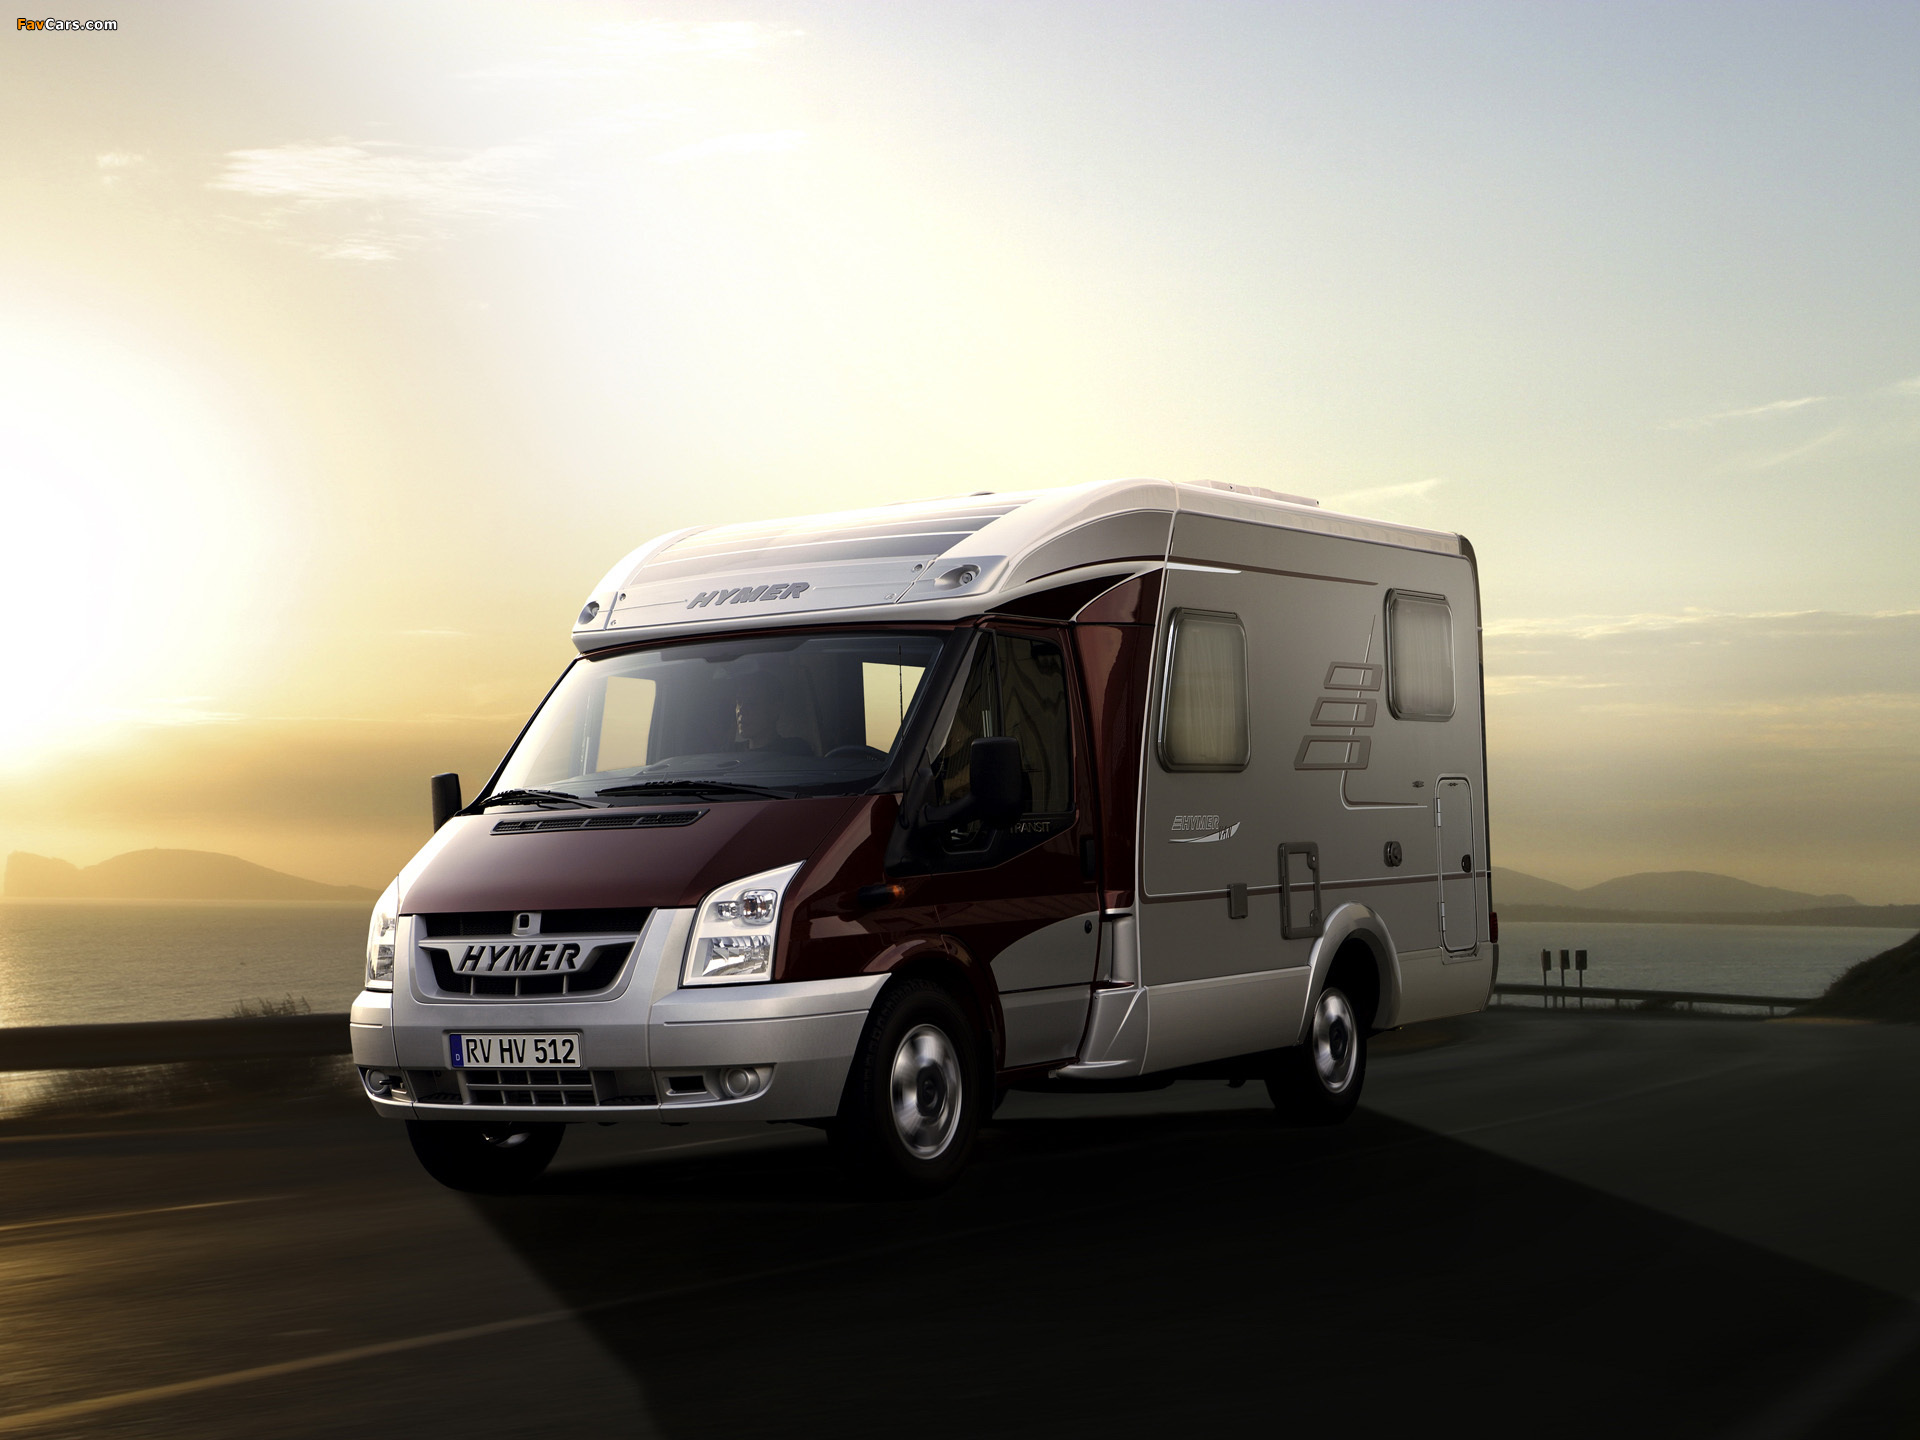 All Car Wallpaper Download Hymer Van 512 2008 Pictures 1920x1440